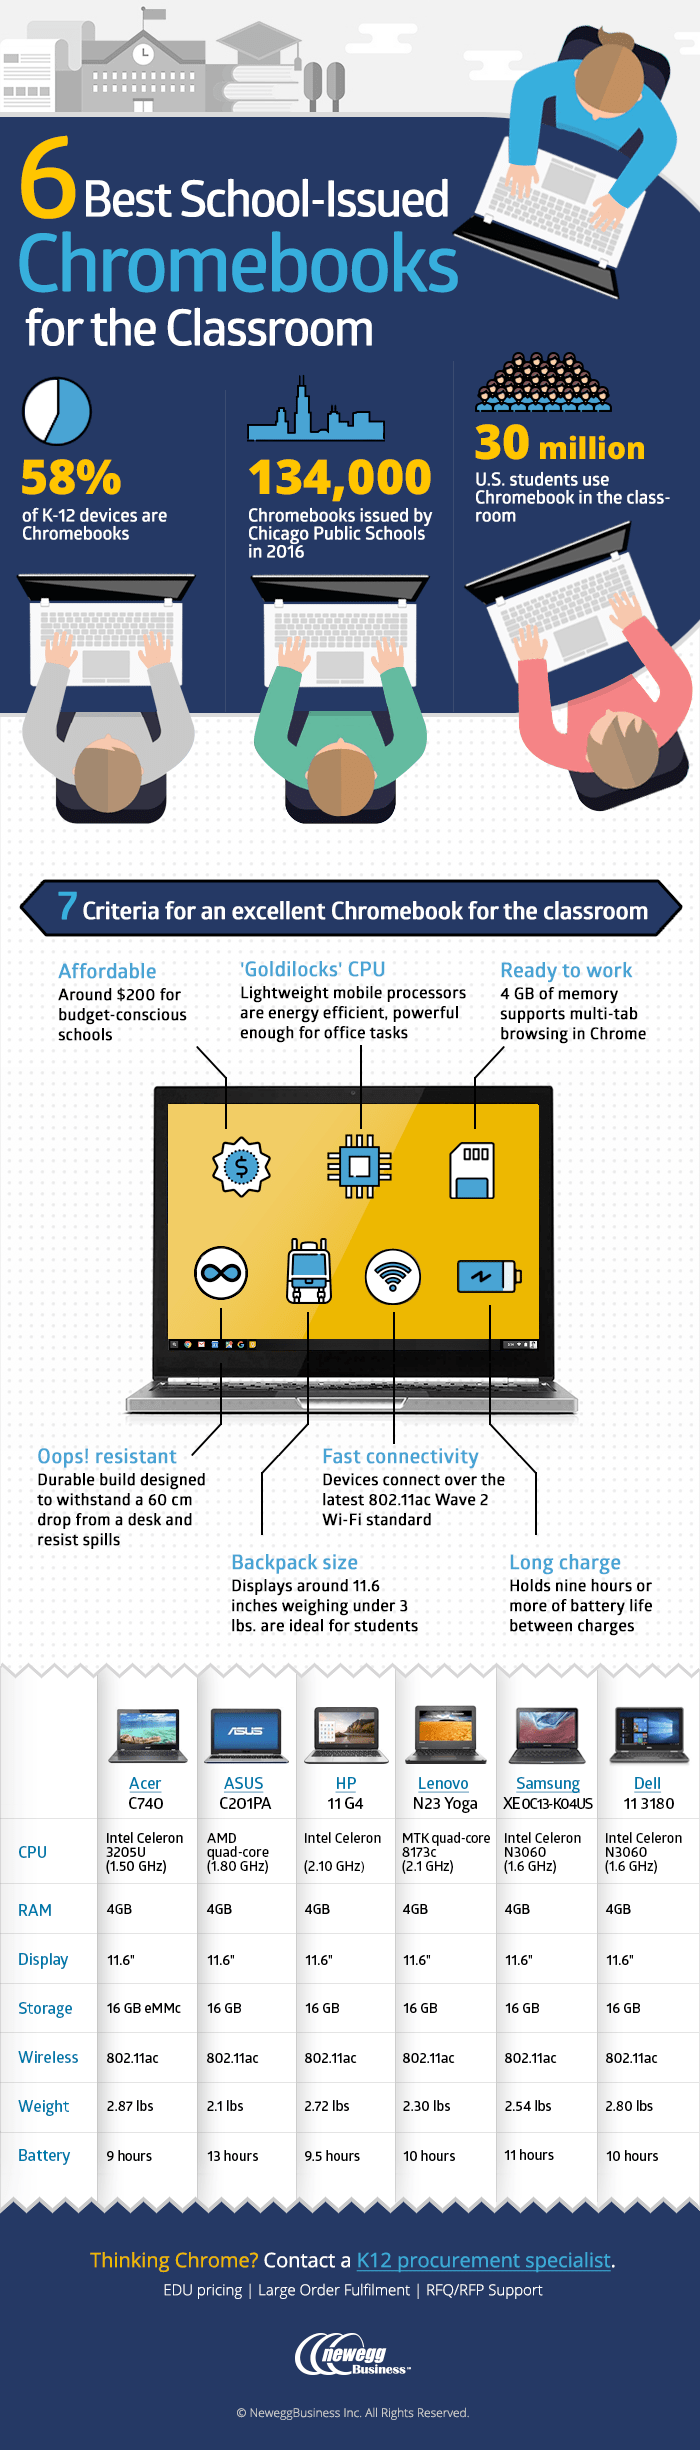 best chromebooks for classrooms and schools